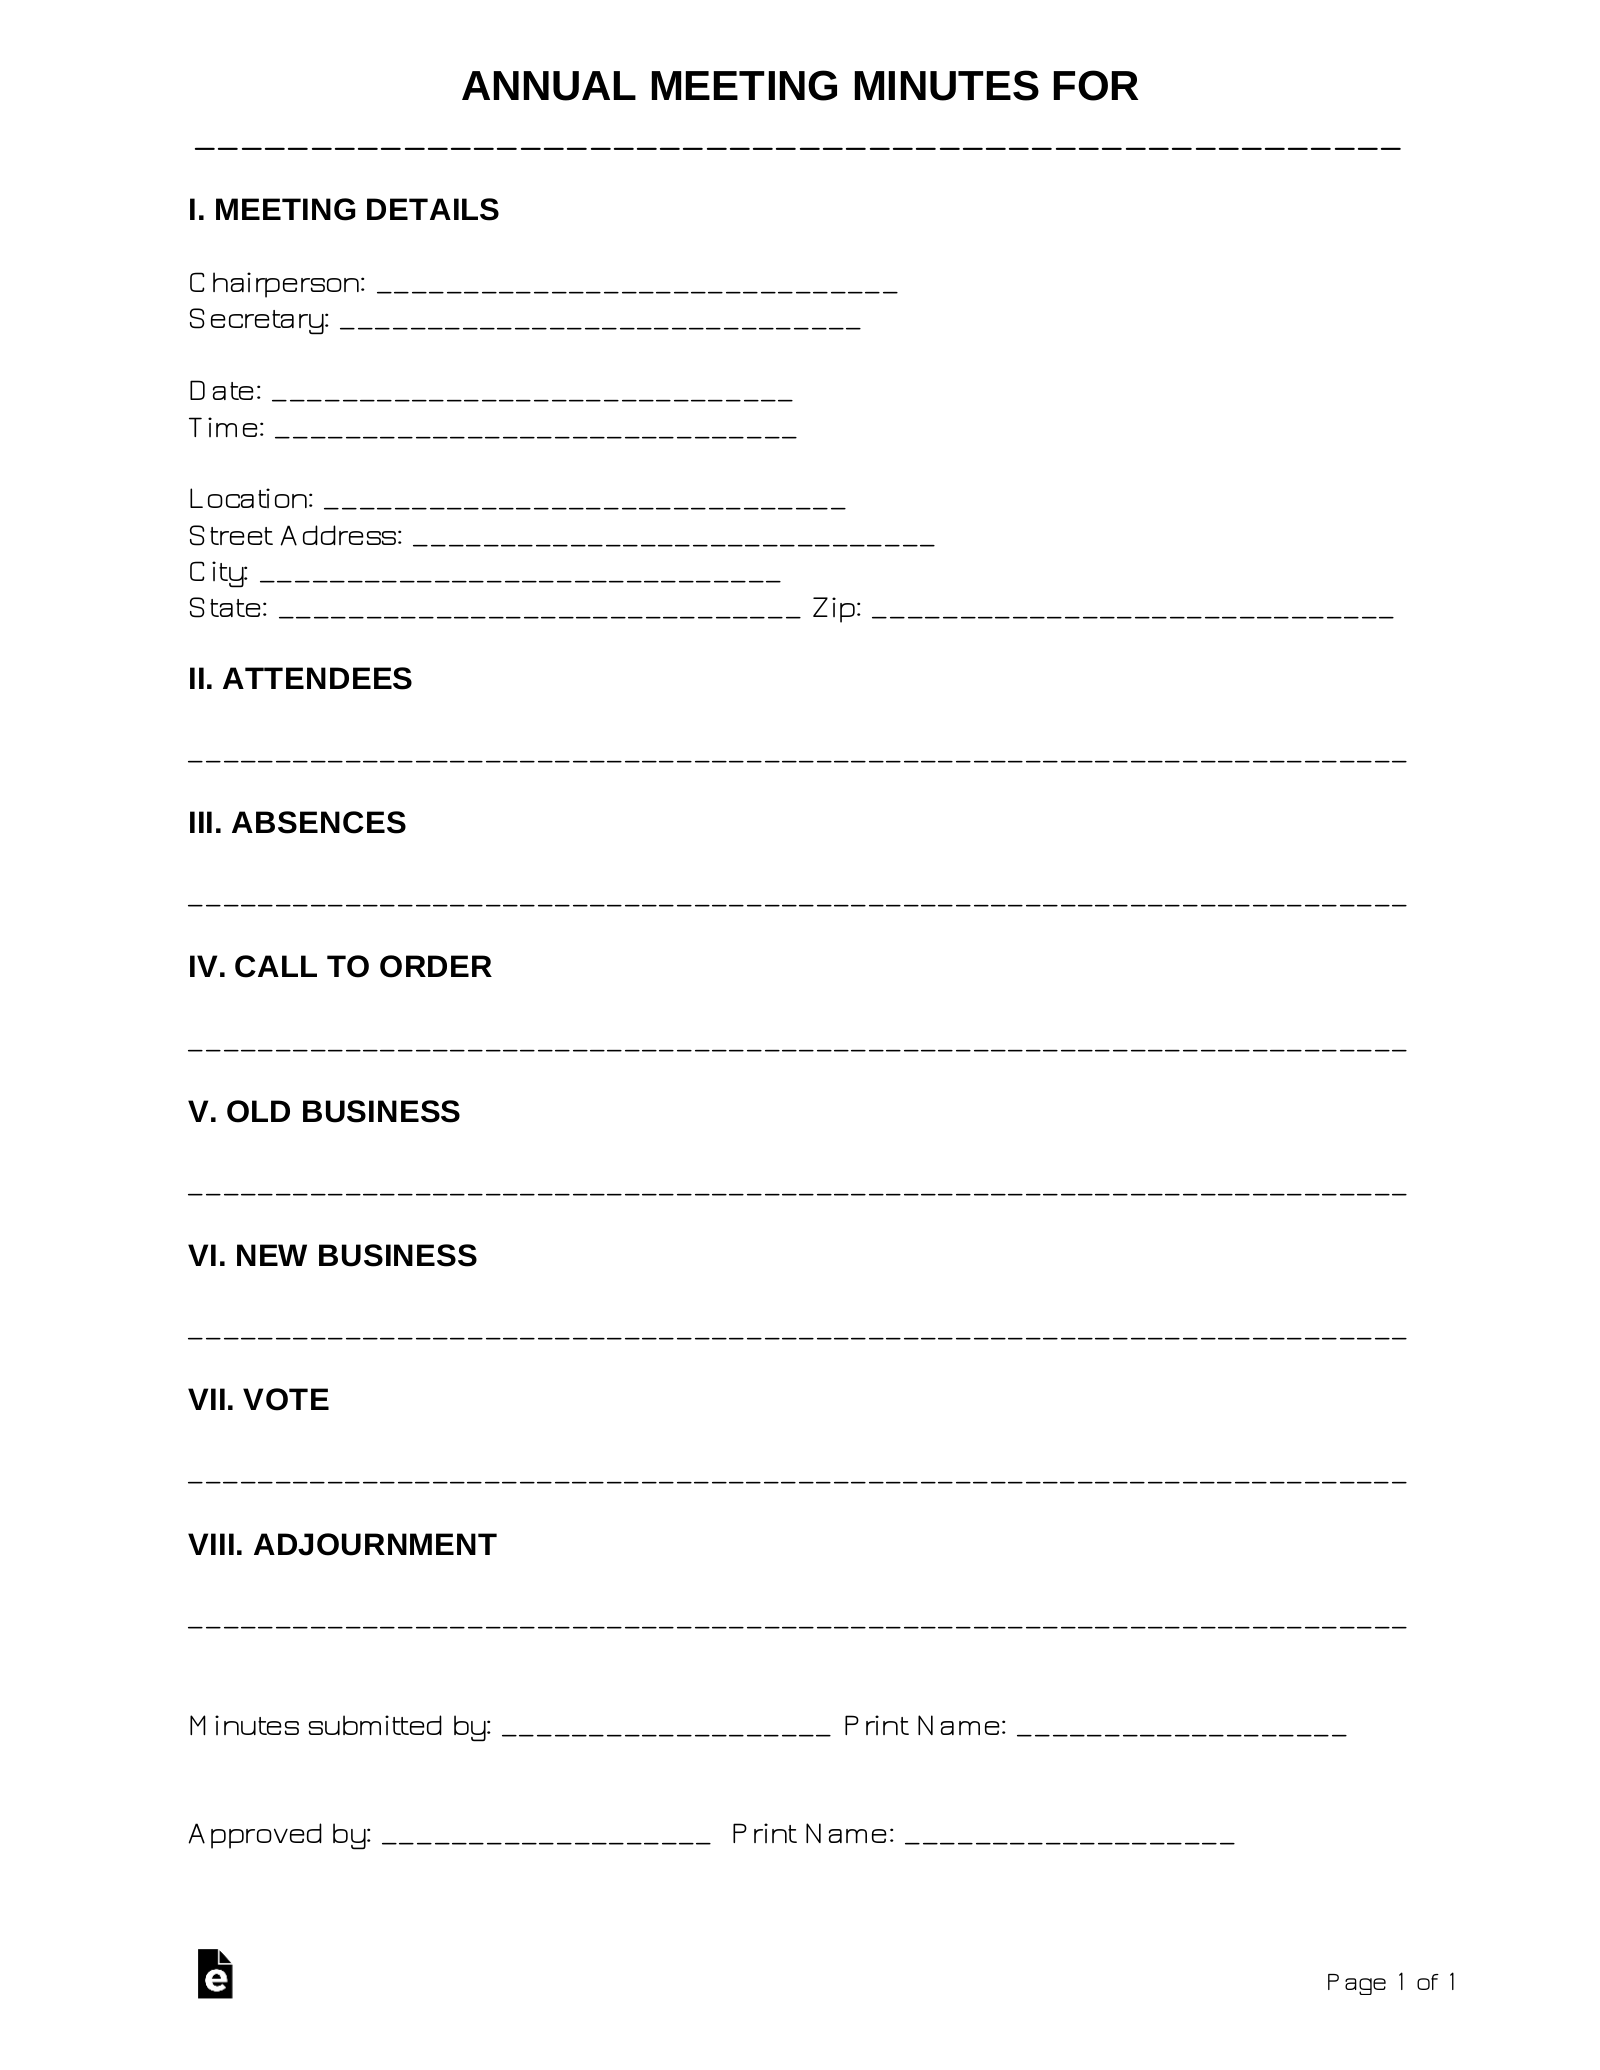 Free Annual Meeting Minutes Template  Sample - Word  PDF – eForms For Corporate Minutes Template Word